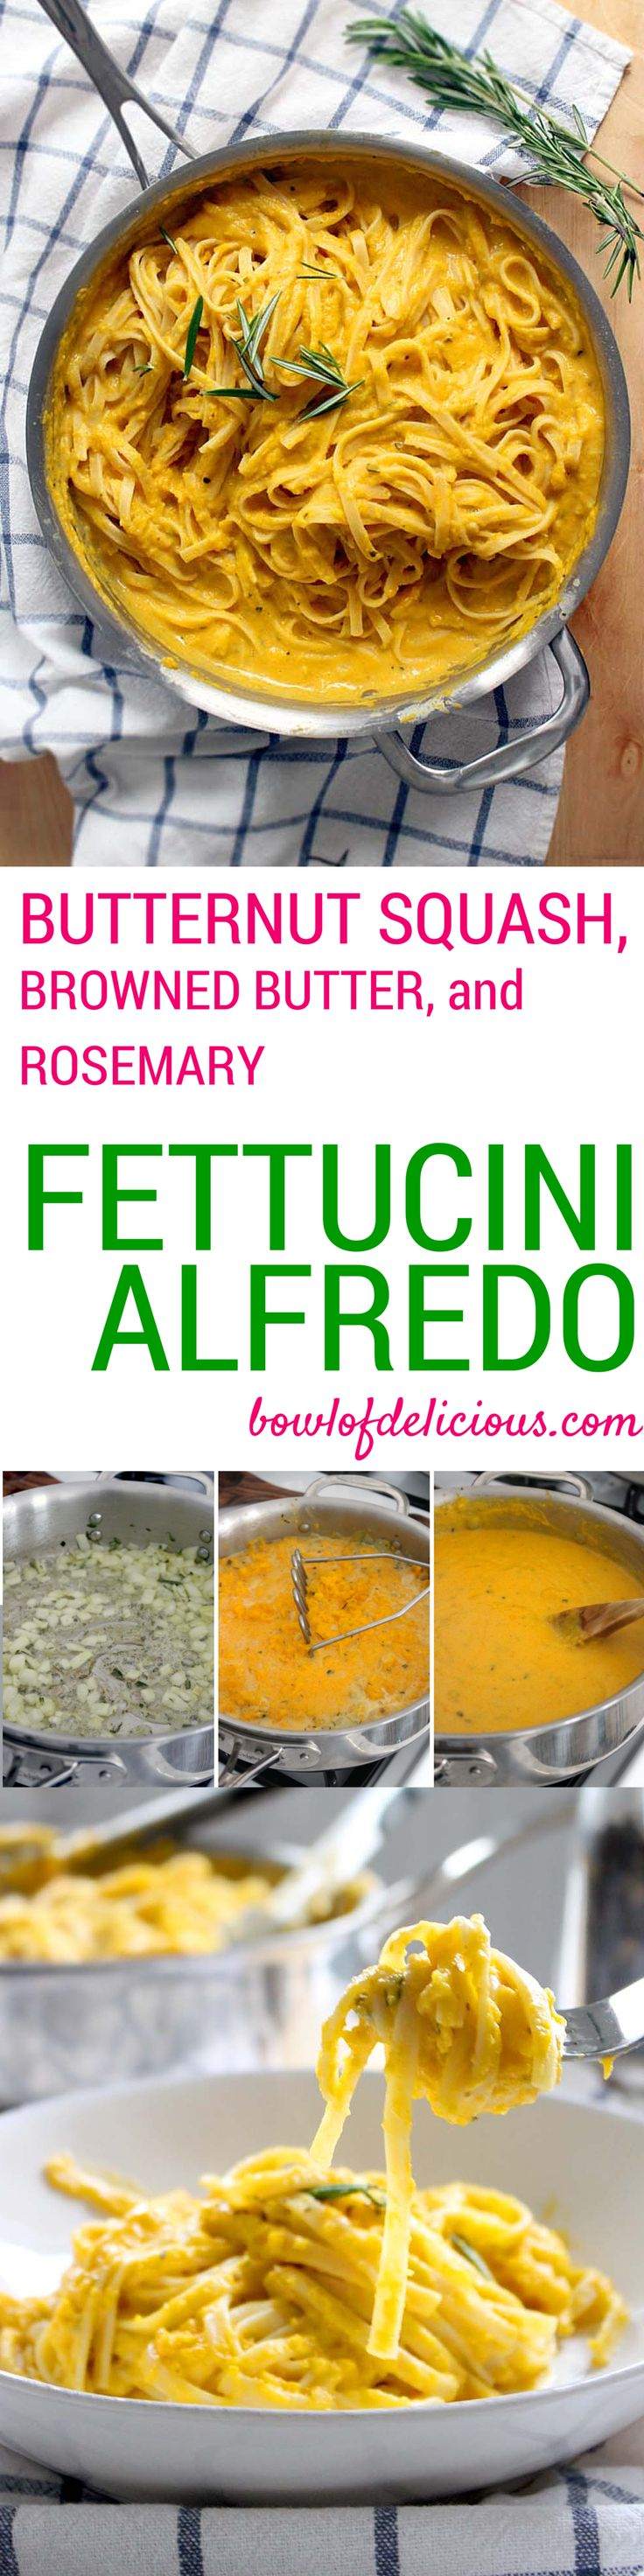 This creamy butternut squash pasta sauce is rich, earthy, and aromatic, with 65% fewer calories than traditional Alfredo sauce! A healthy alternative to Fettucini Alfredo. Quick, easy, make-ahead, and freezer friendly.